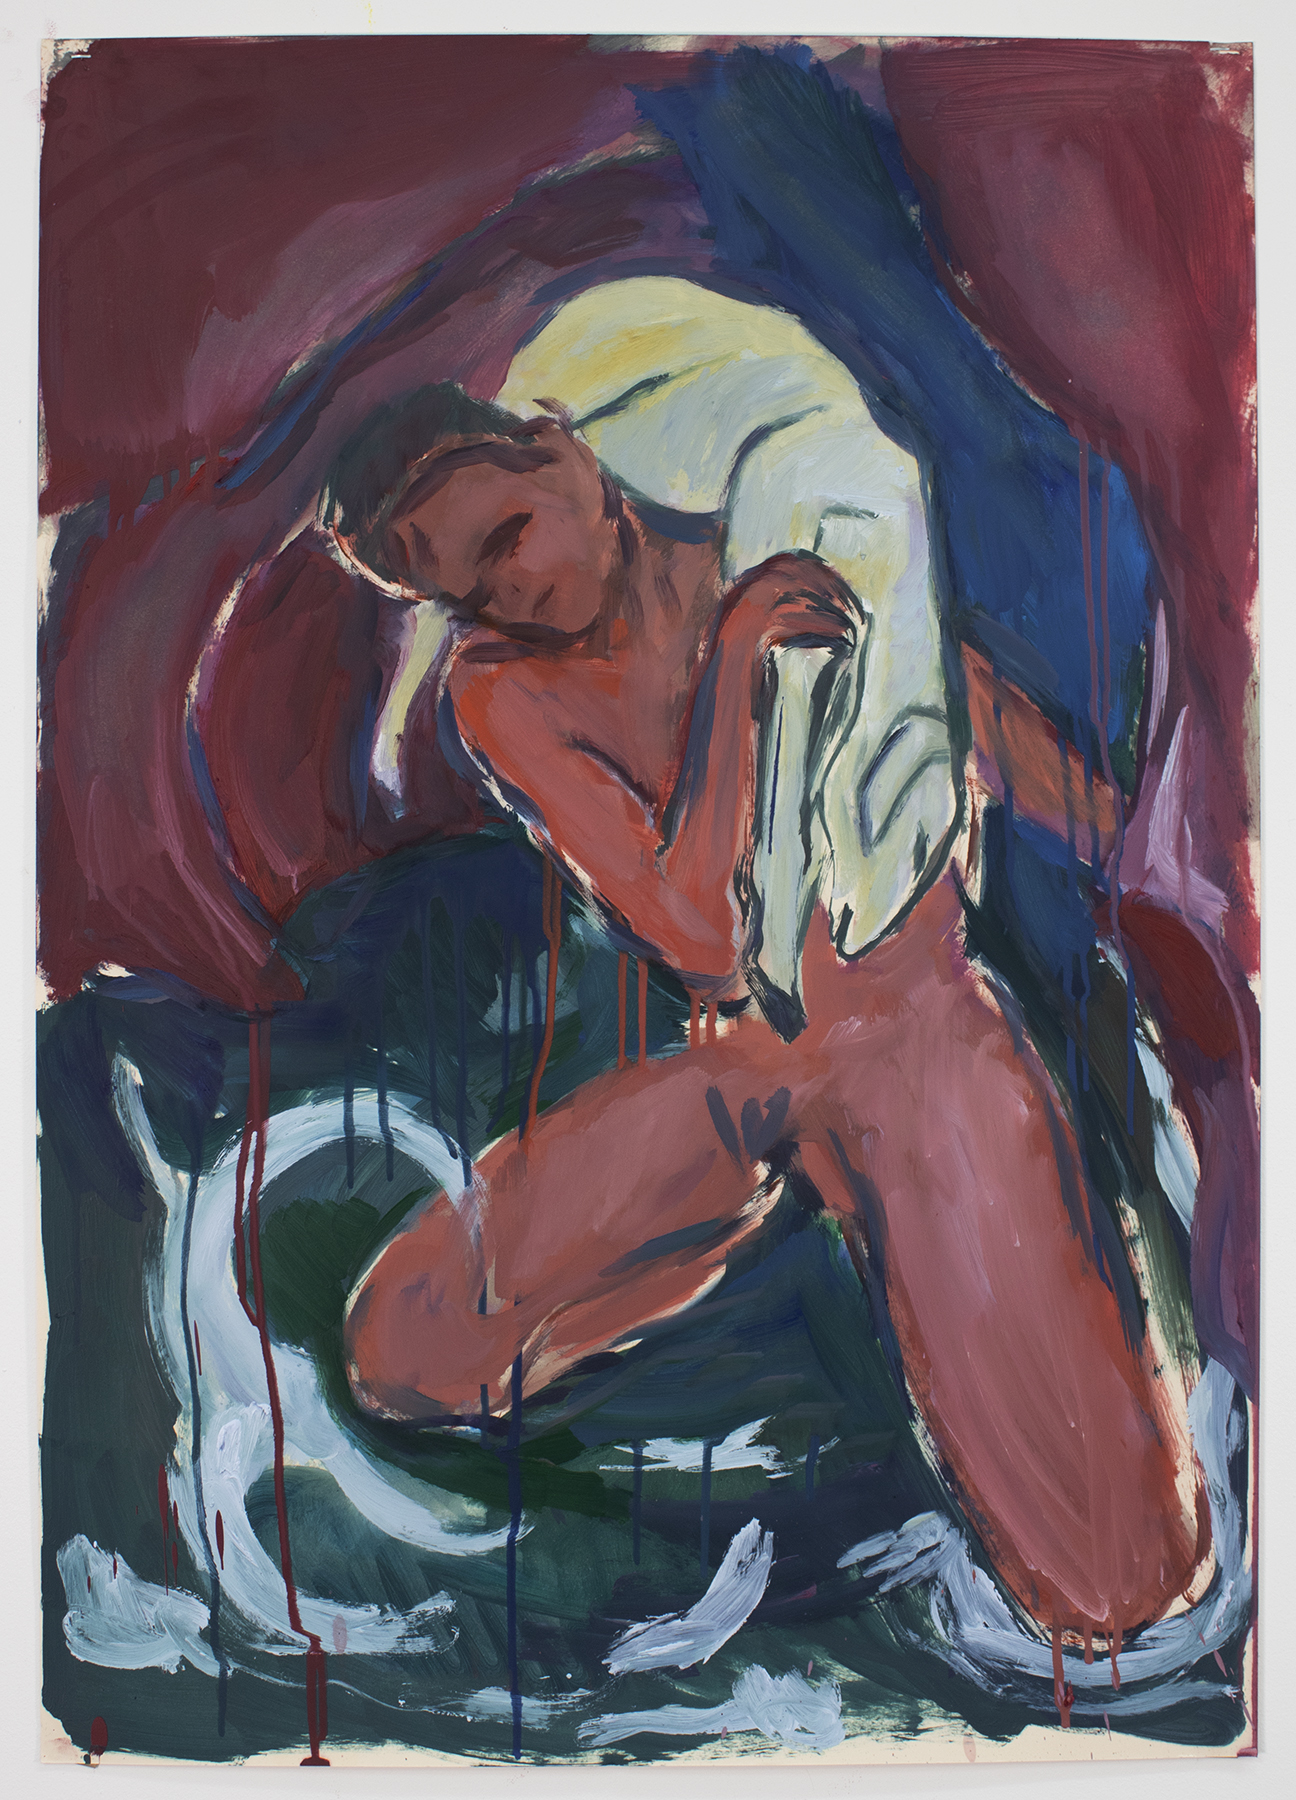 Young Boy with Lamb (After Franz Marc), 2019